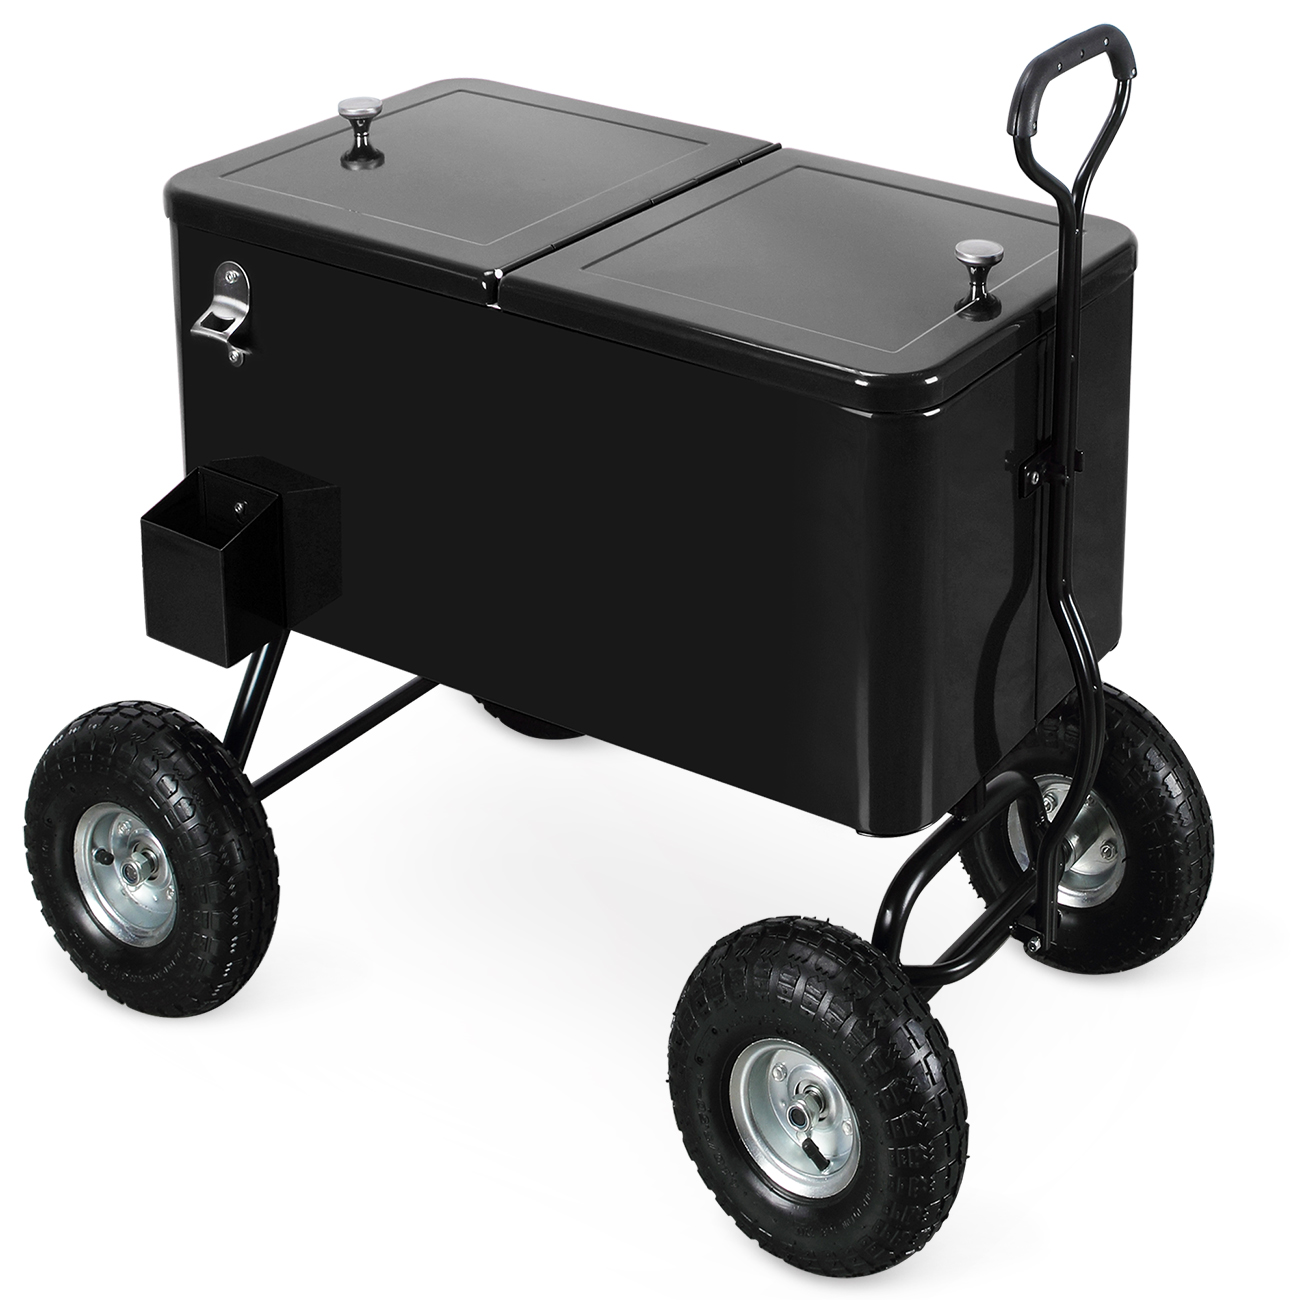 BELLEZE 80 Qt Party Beach Patio Portable Rolling Ice Chest Drink Cooler Wagon w/ Built-In Bottle Opener and Catch Tray